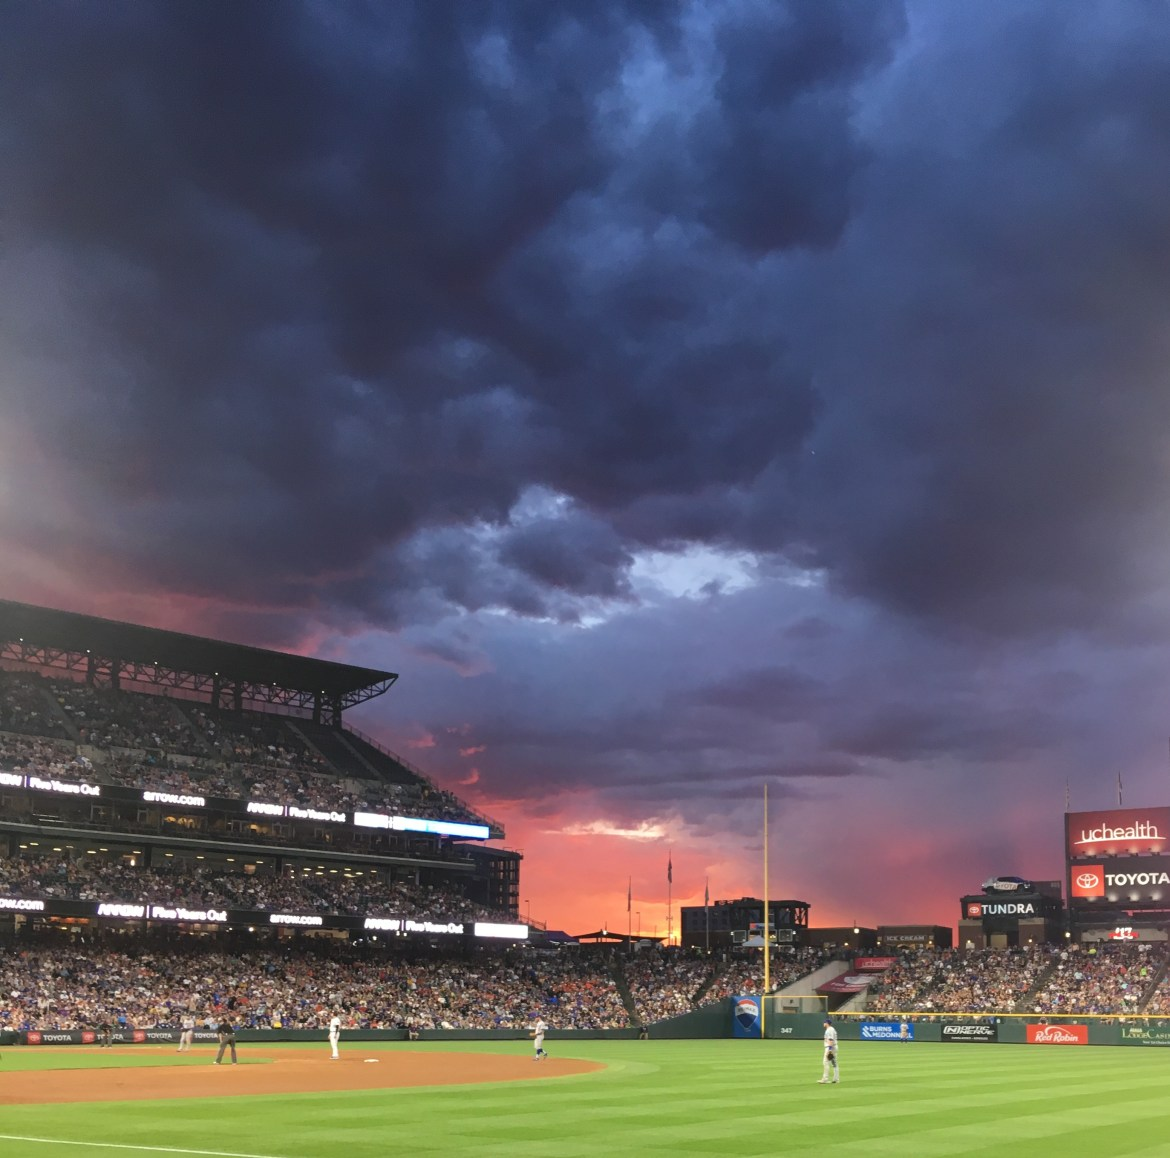 Coors Field Home of the Colorado Rockies, view of the field and moving in storm clod from the first base side mezzanine level